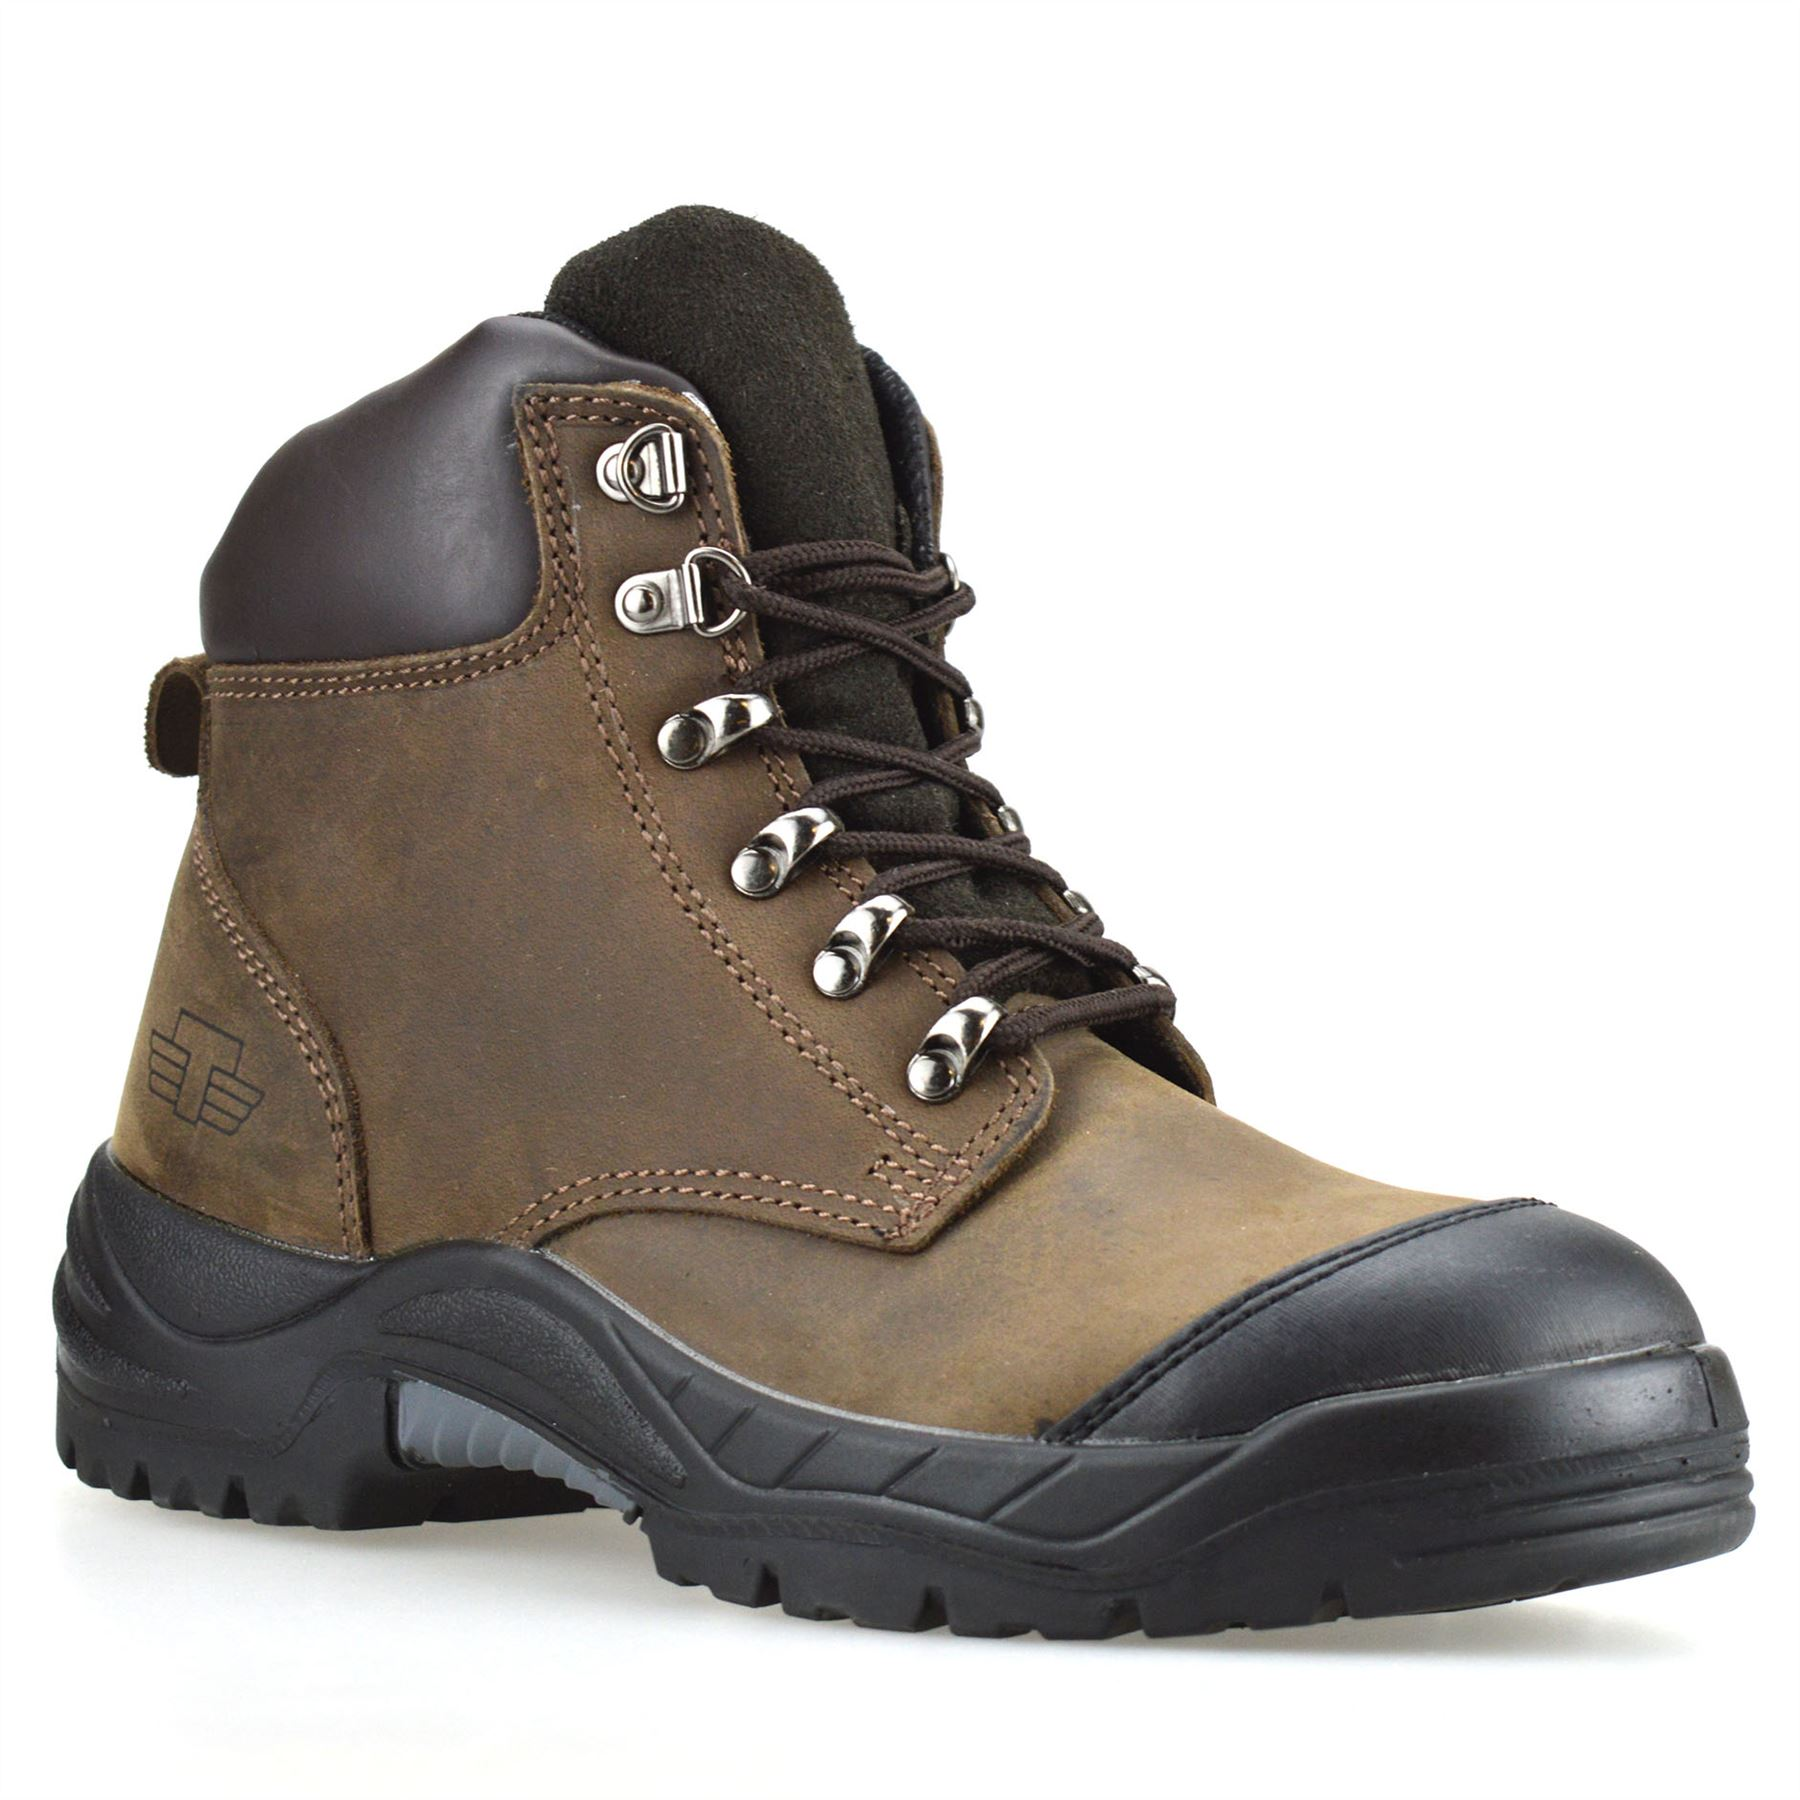 Mens New Leather Combat Safety Steel Toe Cap Work Ankle